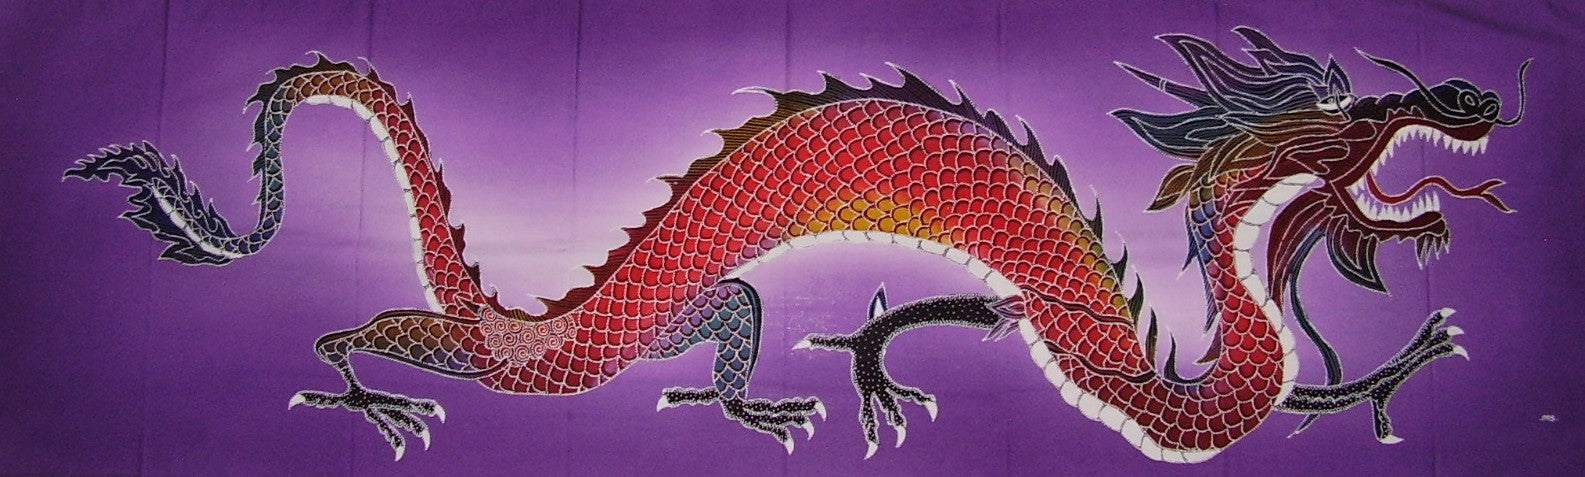 "Authentic Cotton Batik Textile Art Purple Galeru Dragon 56"" x 18"" Multi Color"